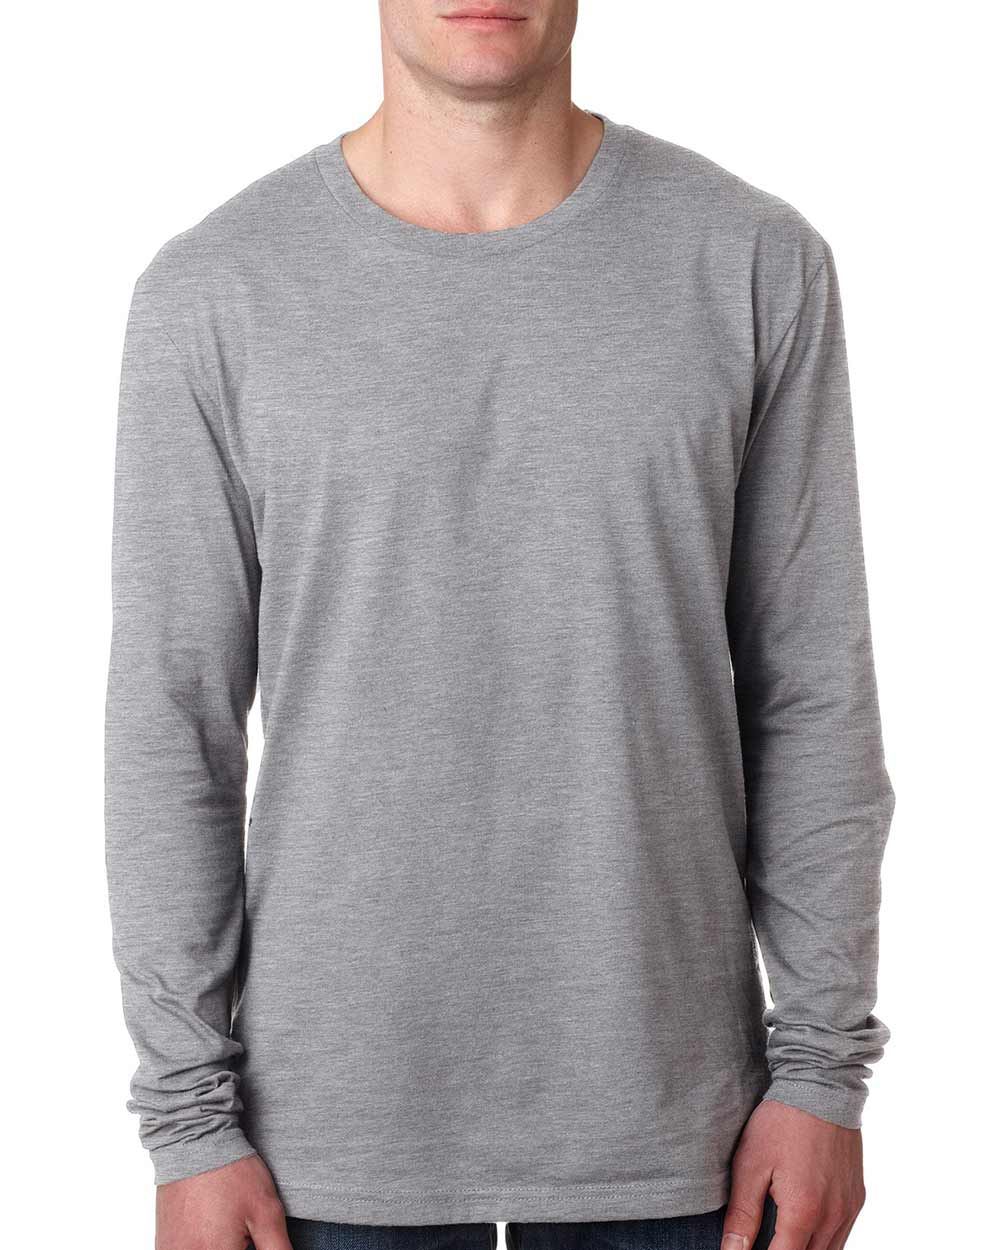 Next Level 3601 - Men's Cotton Long-Sleeve Crew T-Shirt